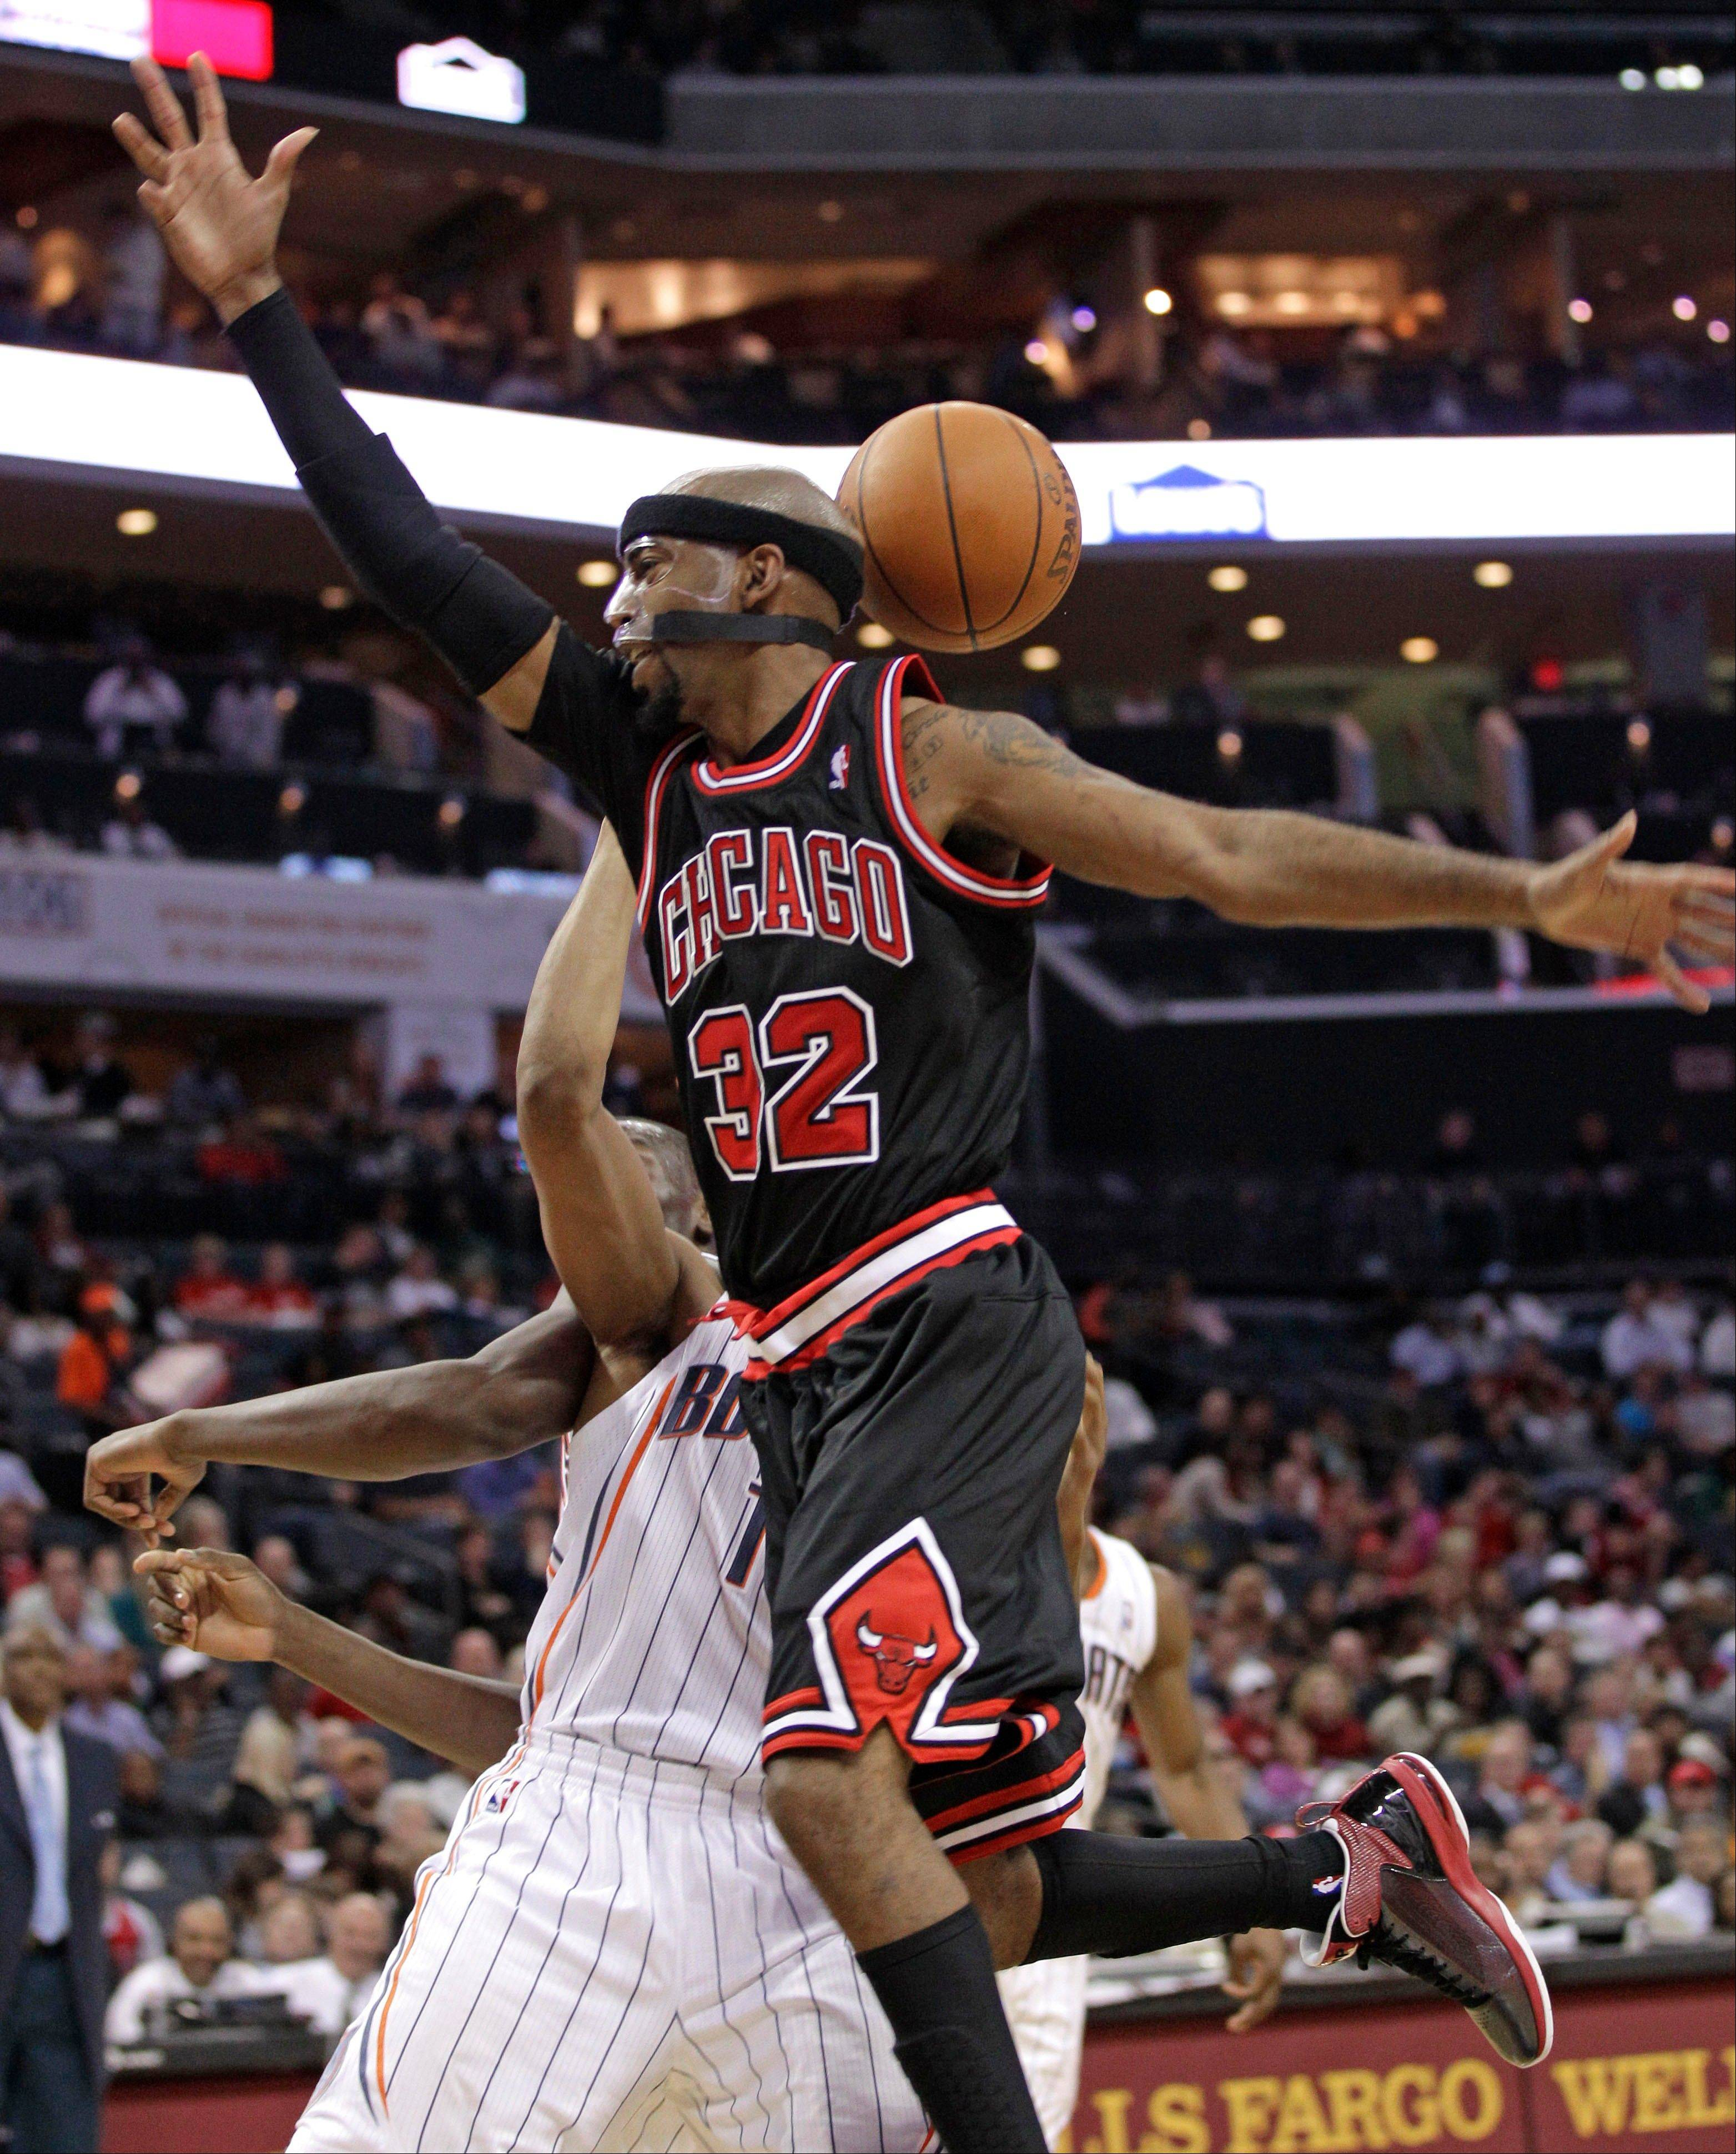 The Bulls' Richard Hamilton, fouled here by Charlotte's Gerald Henderson, finished with 24 points in 24 minutes.